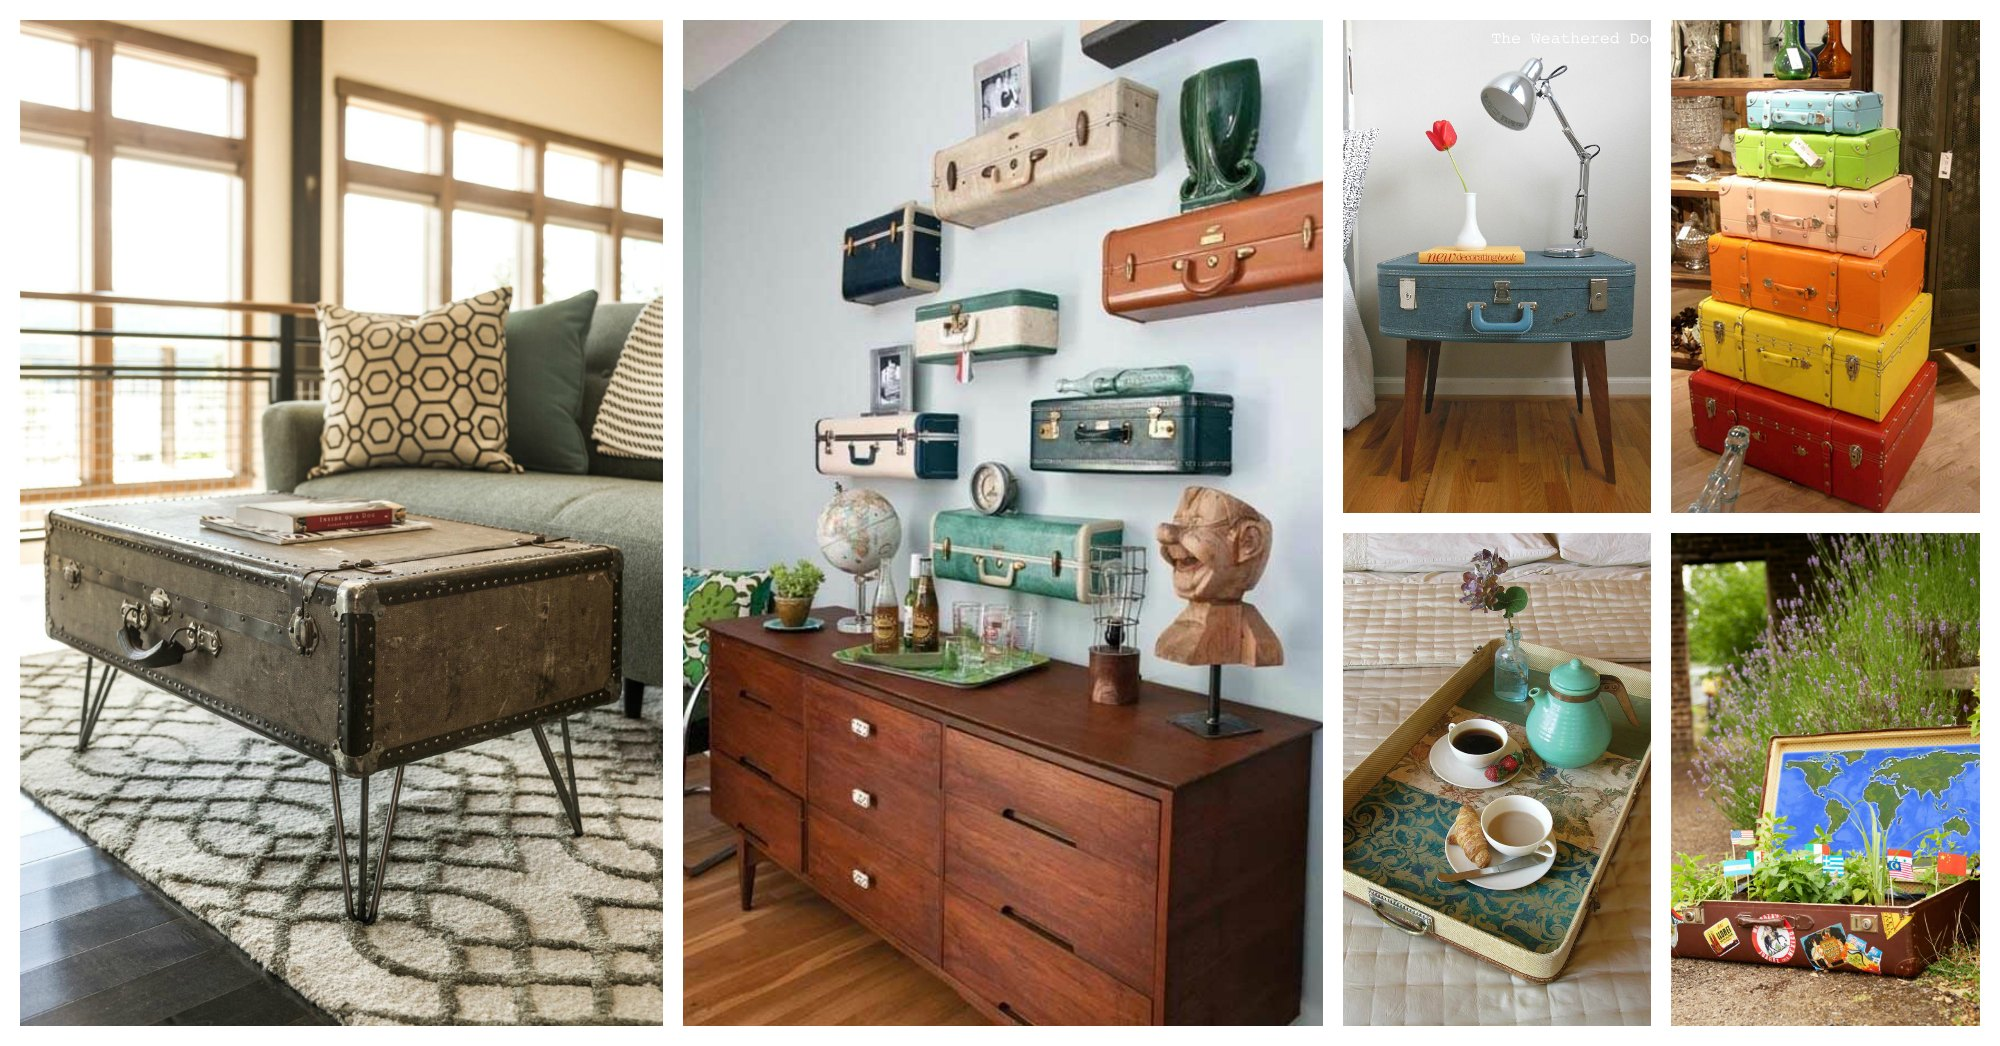 15 Decorating Ideas With Repurposed Old Suitcases